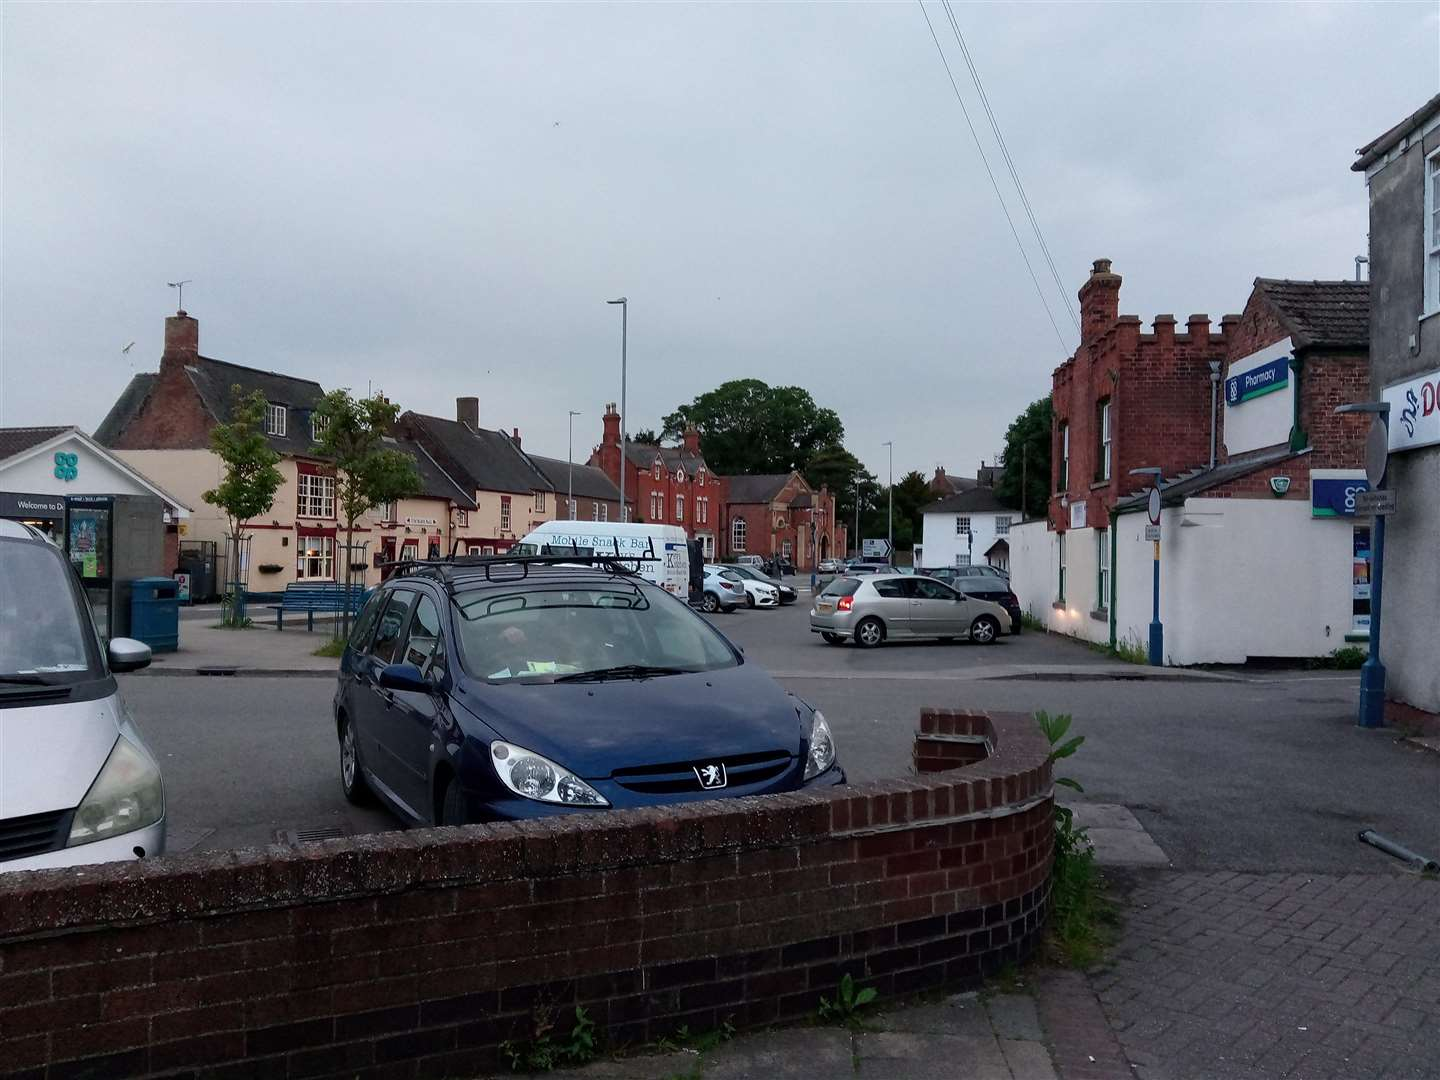 Fed-up parish councillors could bring in a private firm to manage parking in Market Place. (2451610)